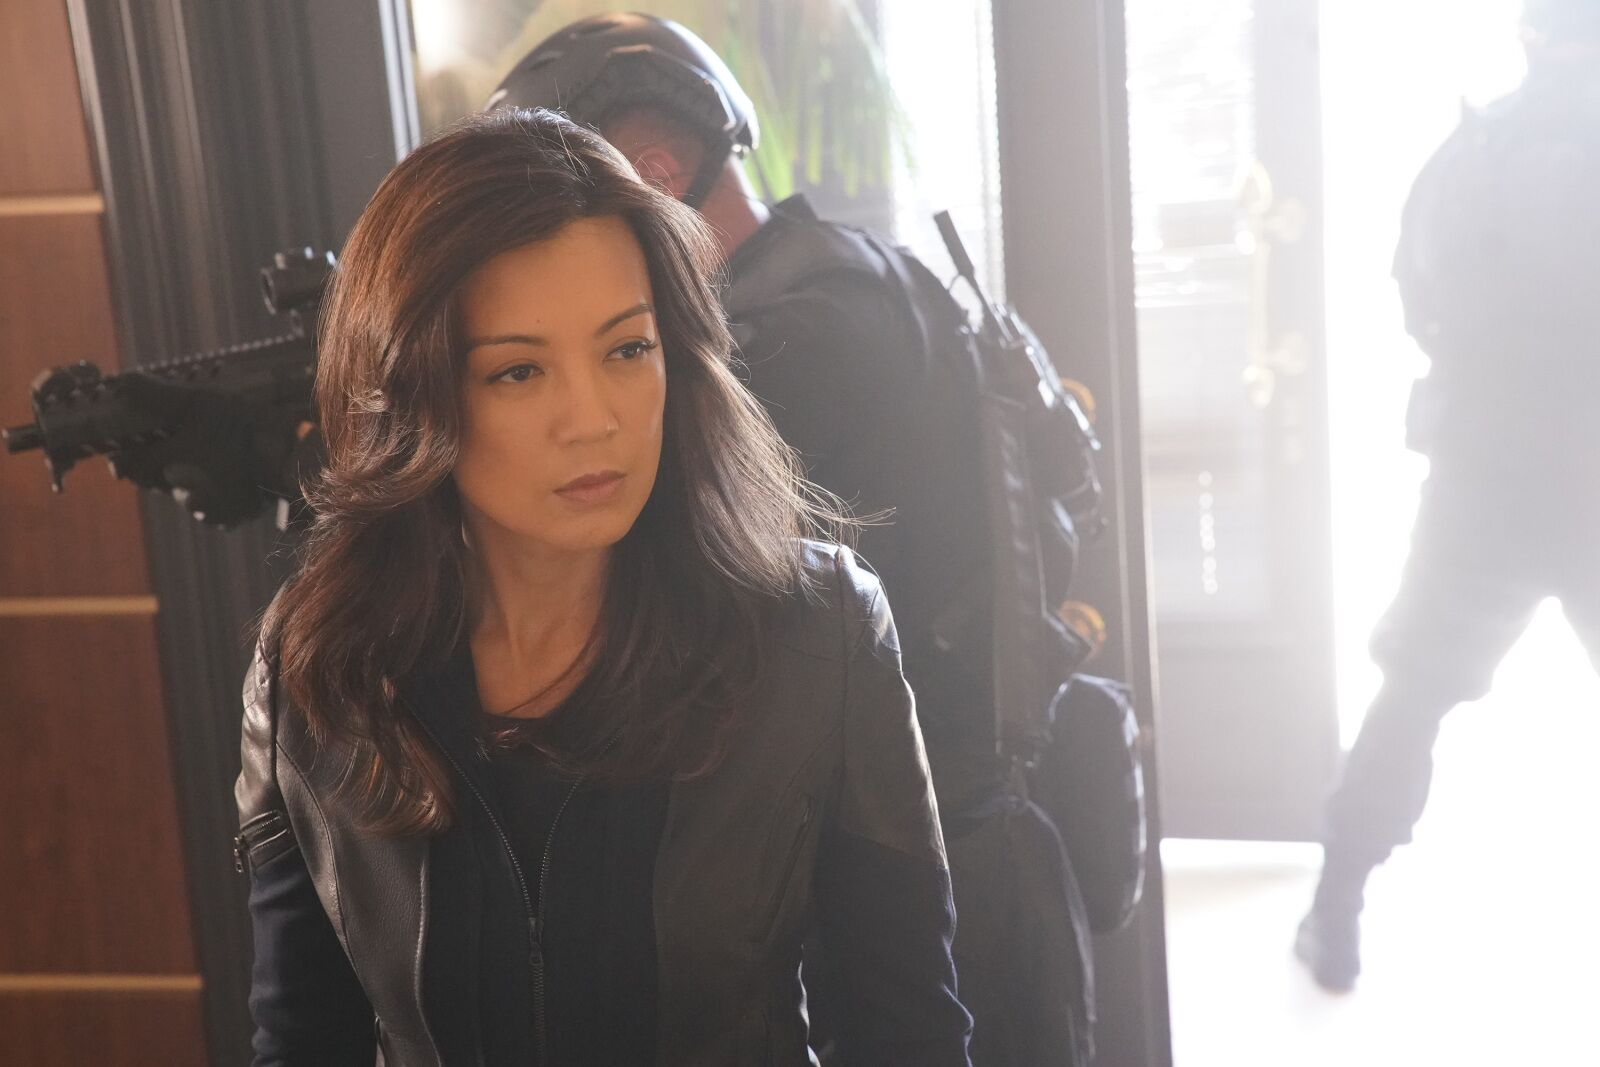 Star Wars: Ming-Na Wen part of The Mandalorian cast and it keeps getting better